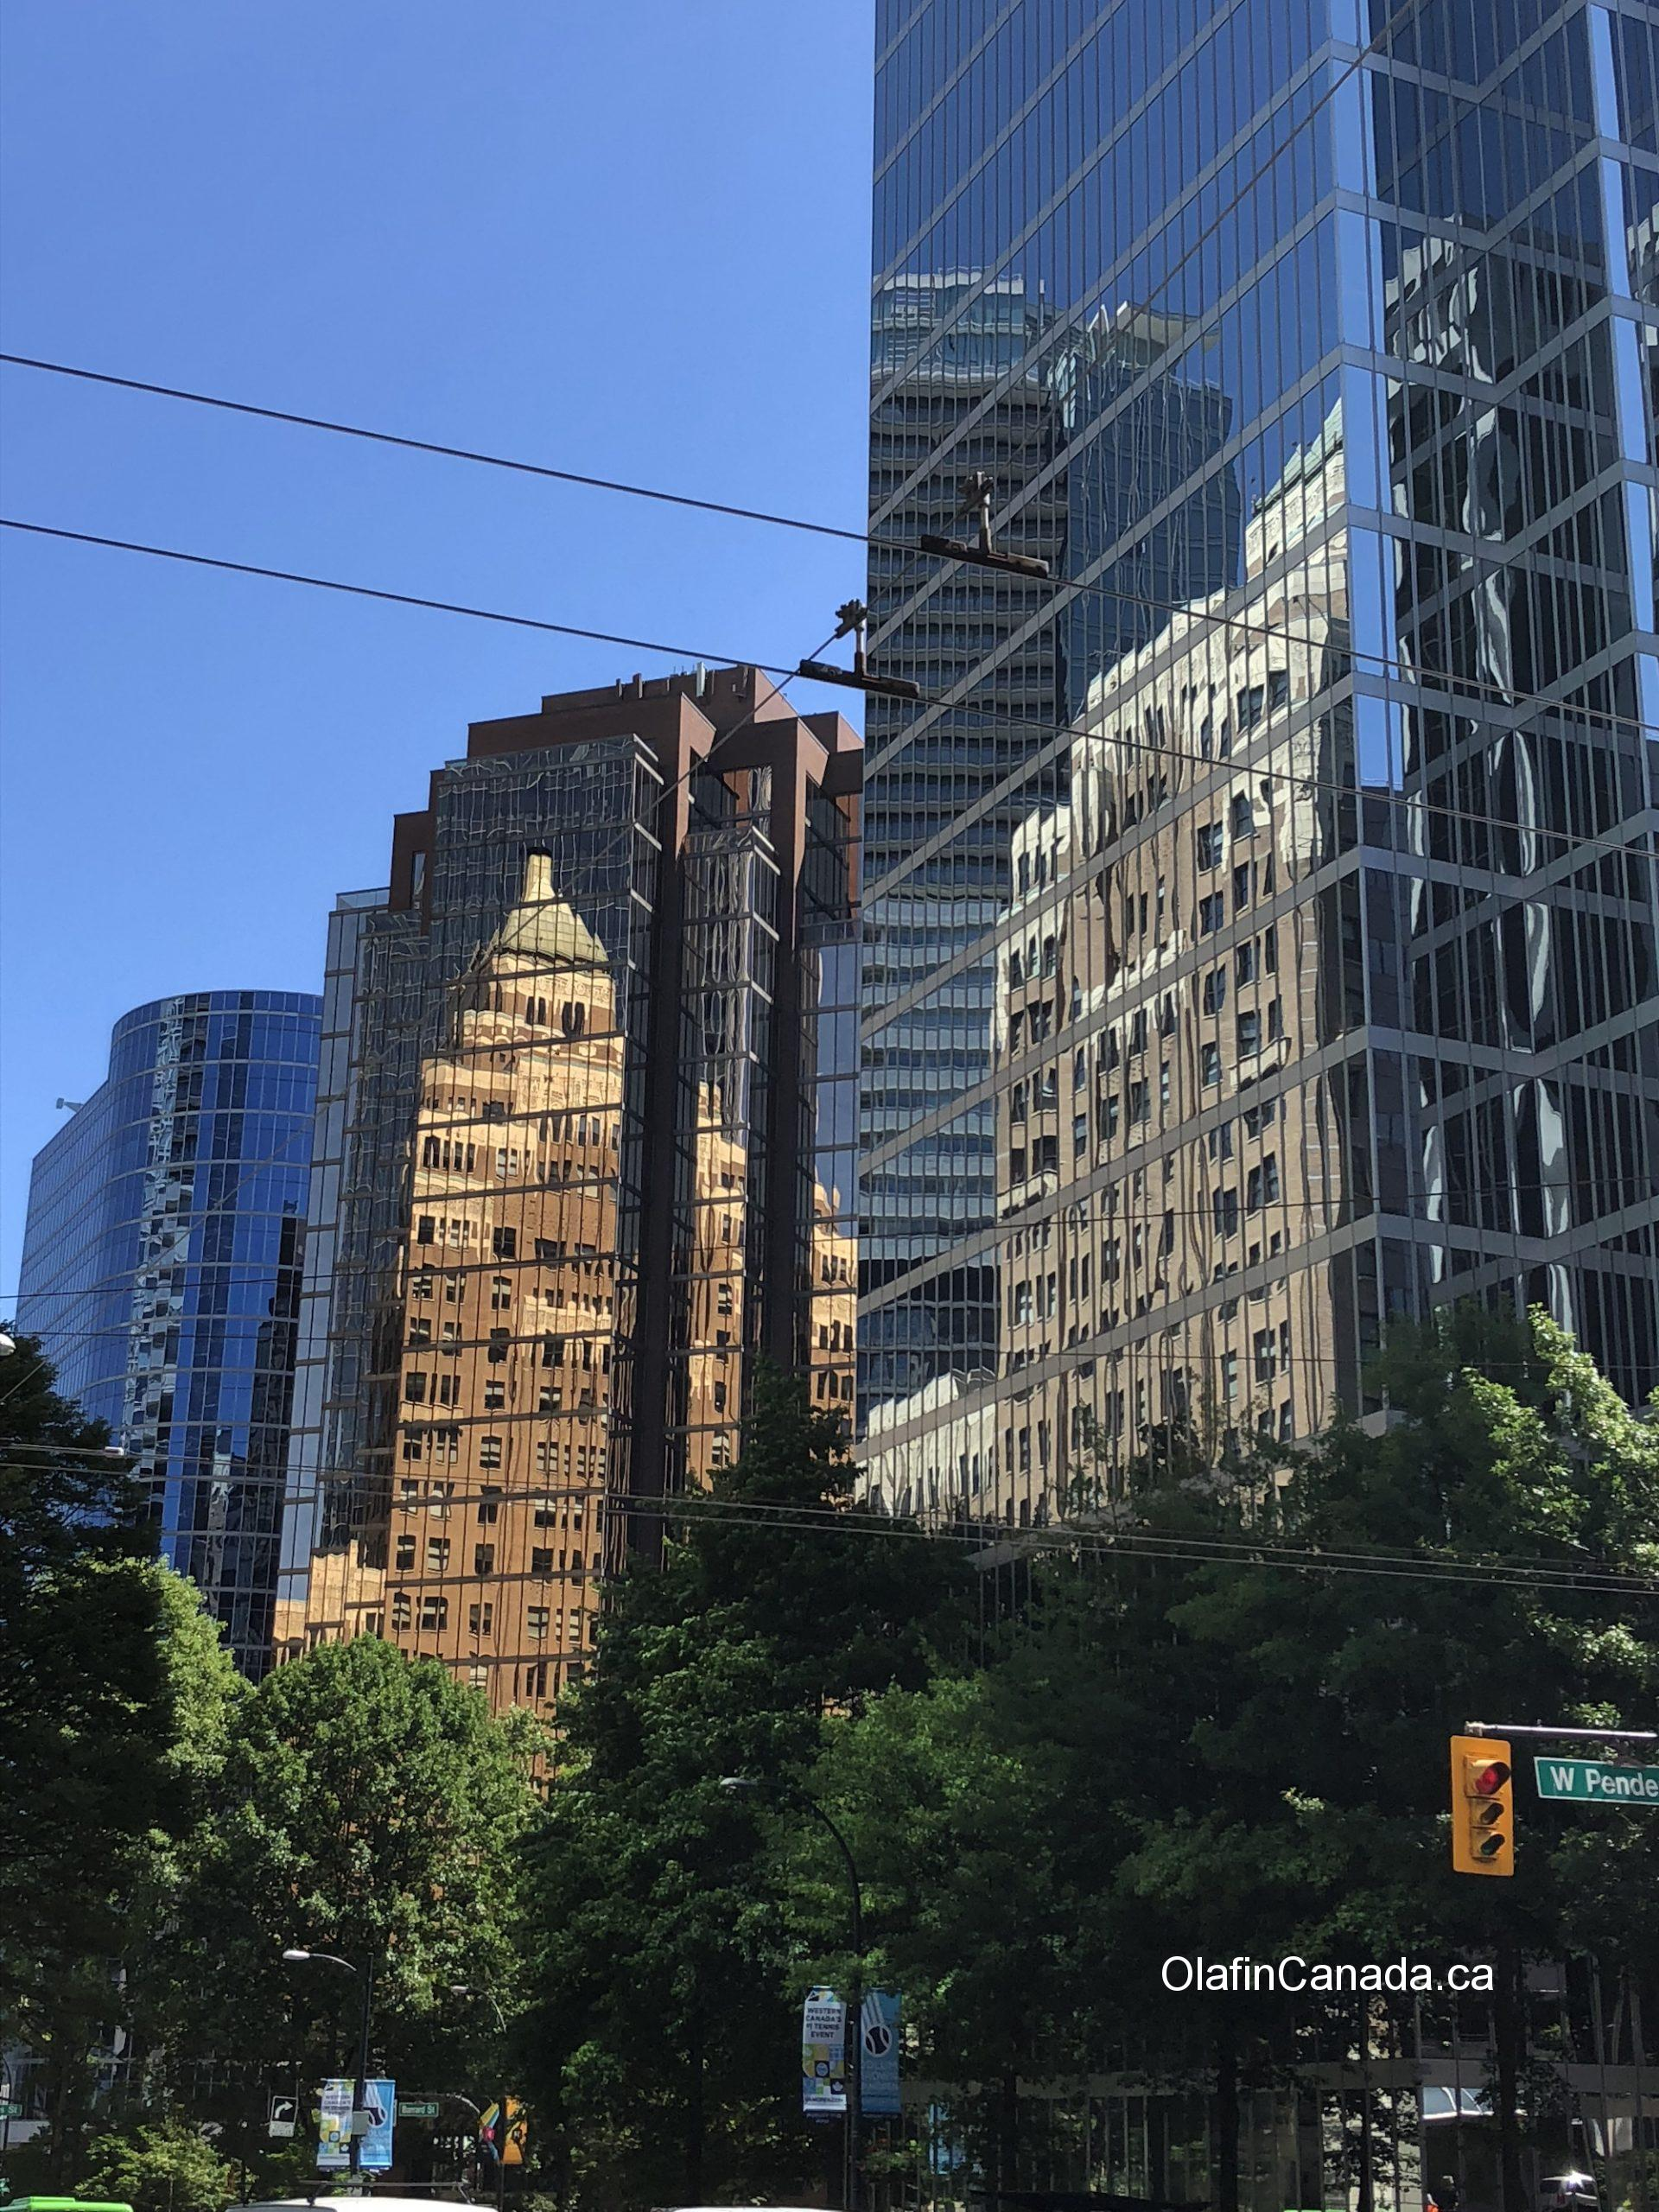 Reflected buildings in downtown Vancouver BC #olafincanada #britishcolumbia #discoverbc #vancouver #reflections